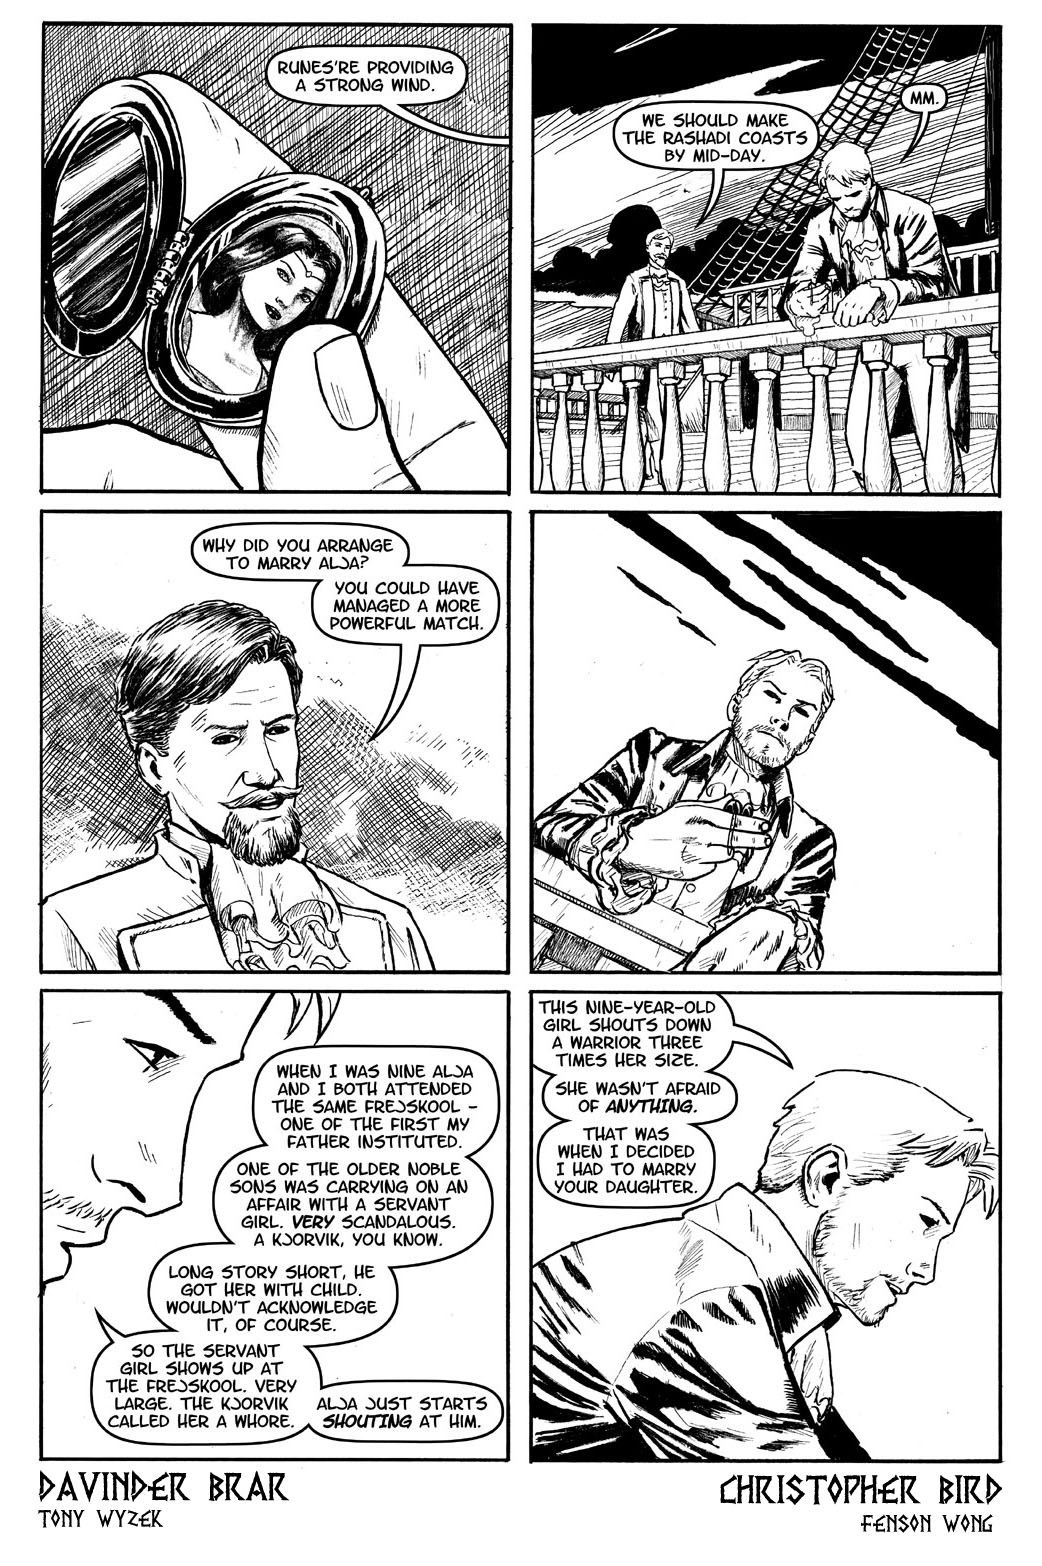 Book 5, page 1